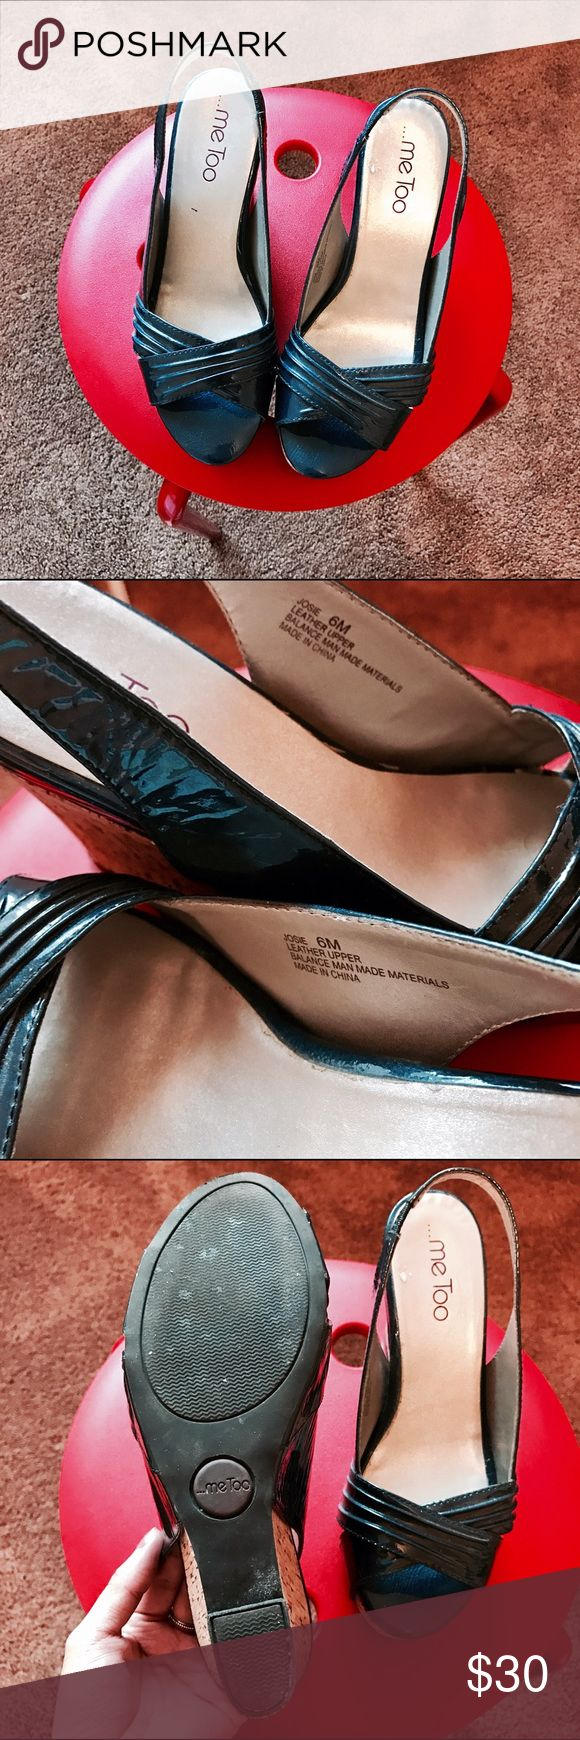 me Too Wedge Pump shoes Good condition, very comfortable me Too Shoes Wedges